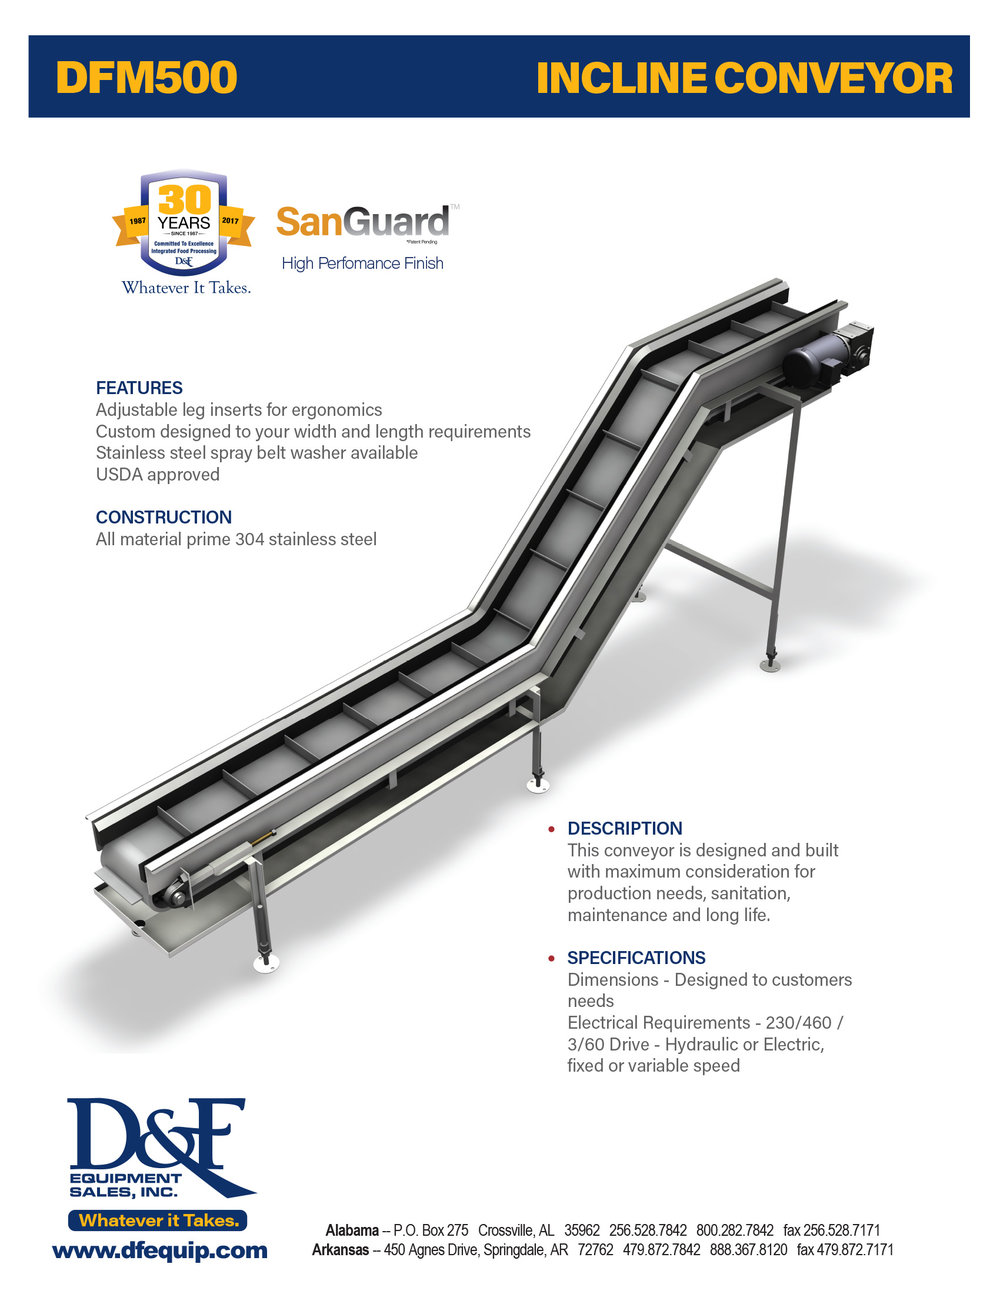 DFM500-InclineConveyor2017.jpg